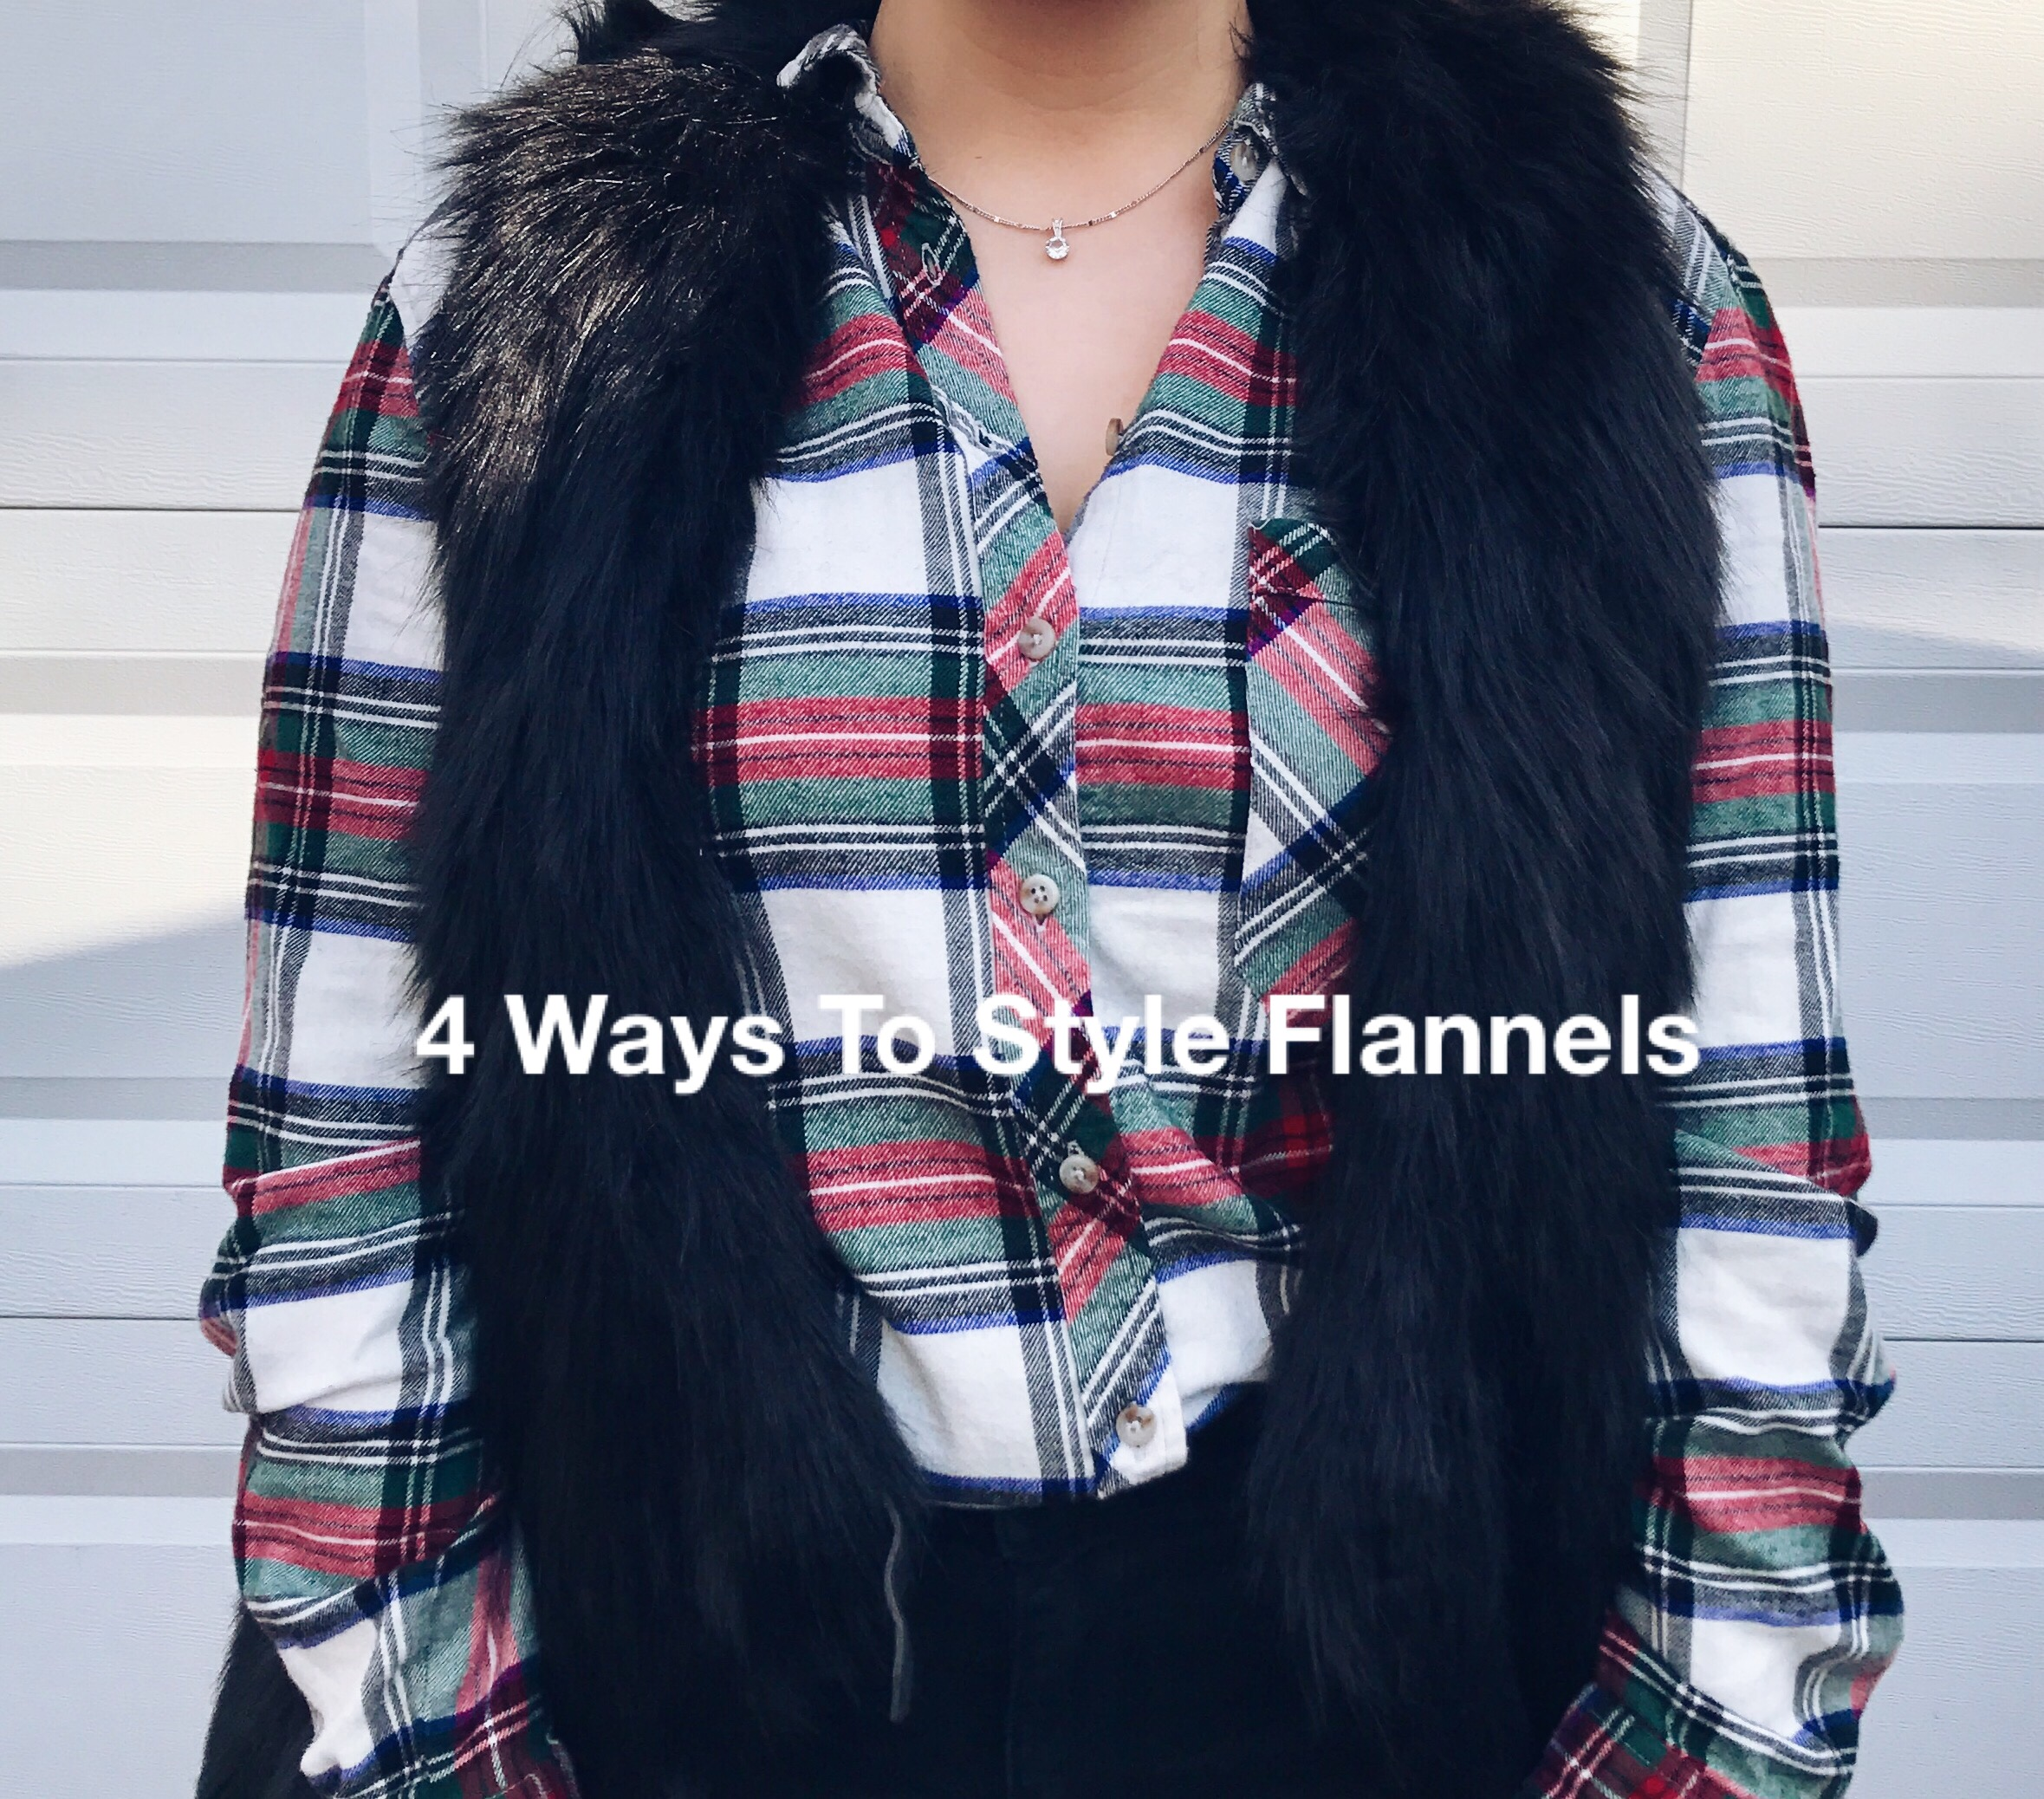 4 Ways To Style Flannels